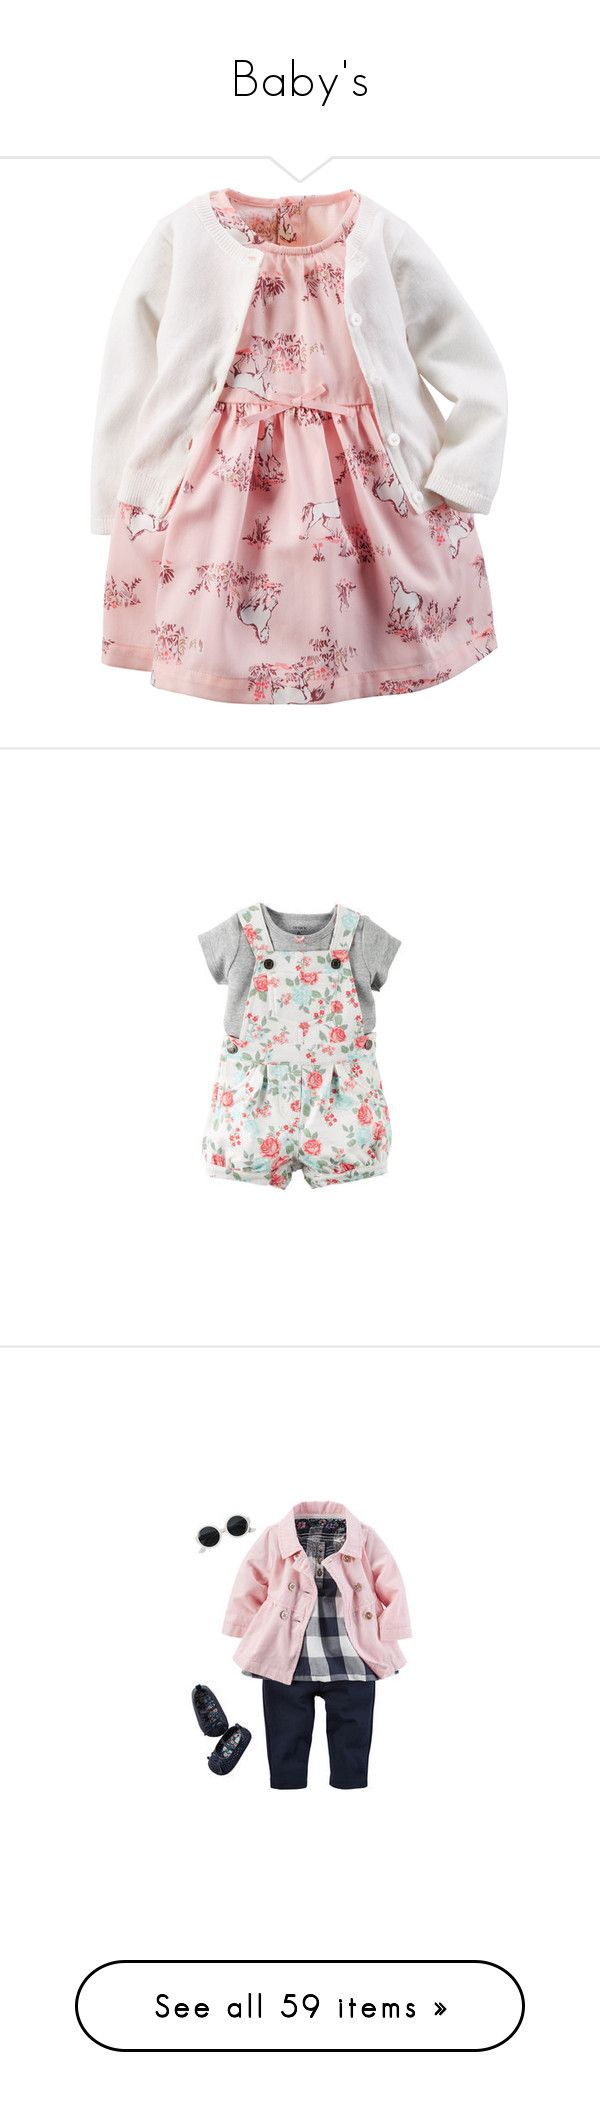 """Baby's"" by dorastyles-clxiv ❤ liked on Polyvore featuring Baby, baby, baby girl, baby girl clothes, dresses, navy stripe dress, striped dresses, navy blue striped dress, navy dresses and retro print dress"